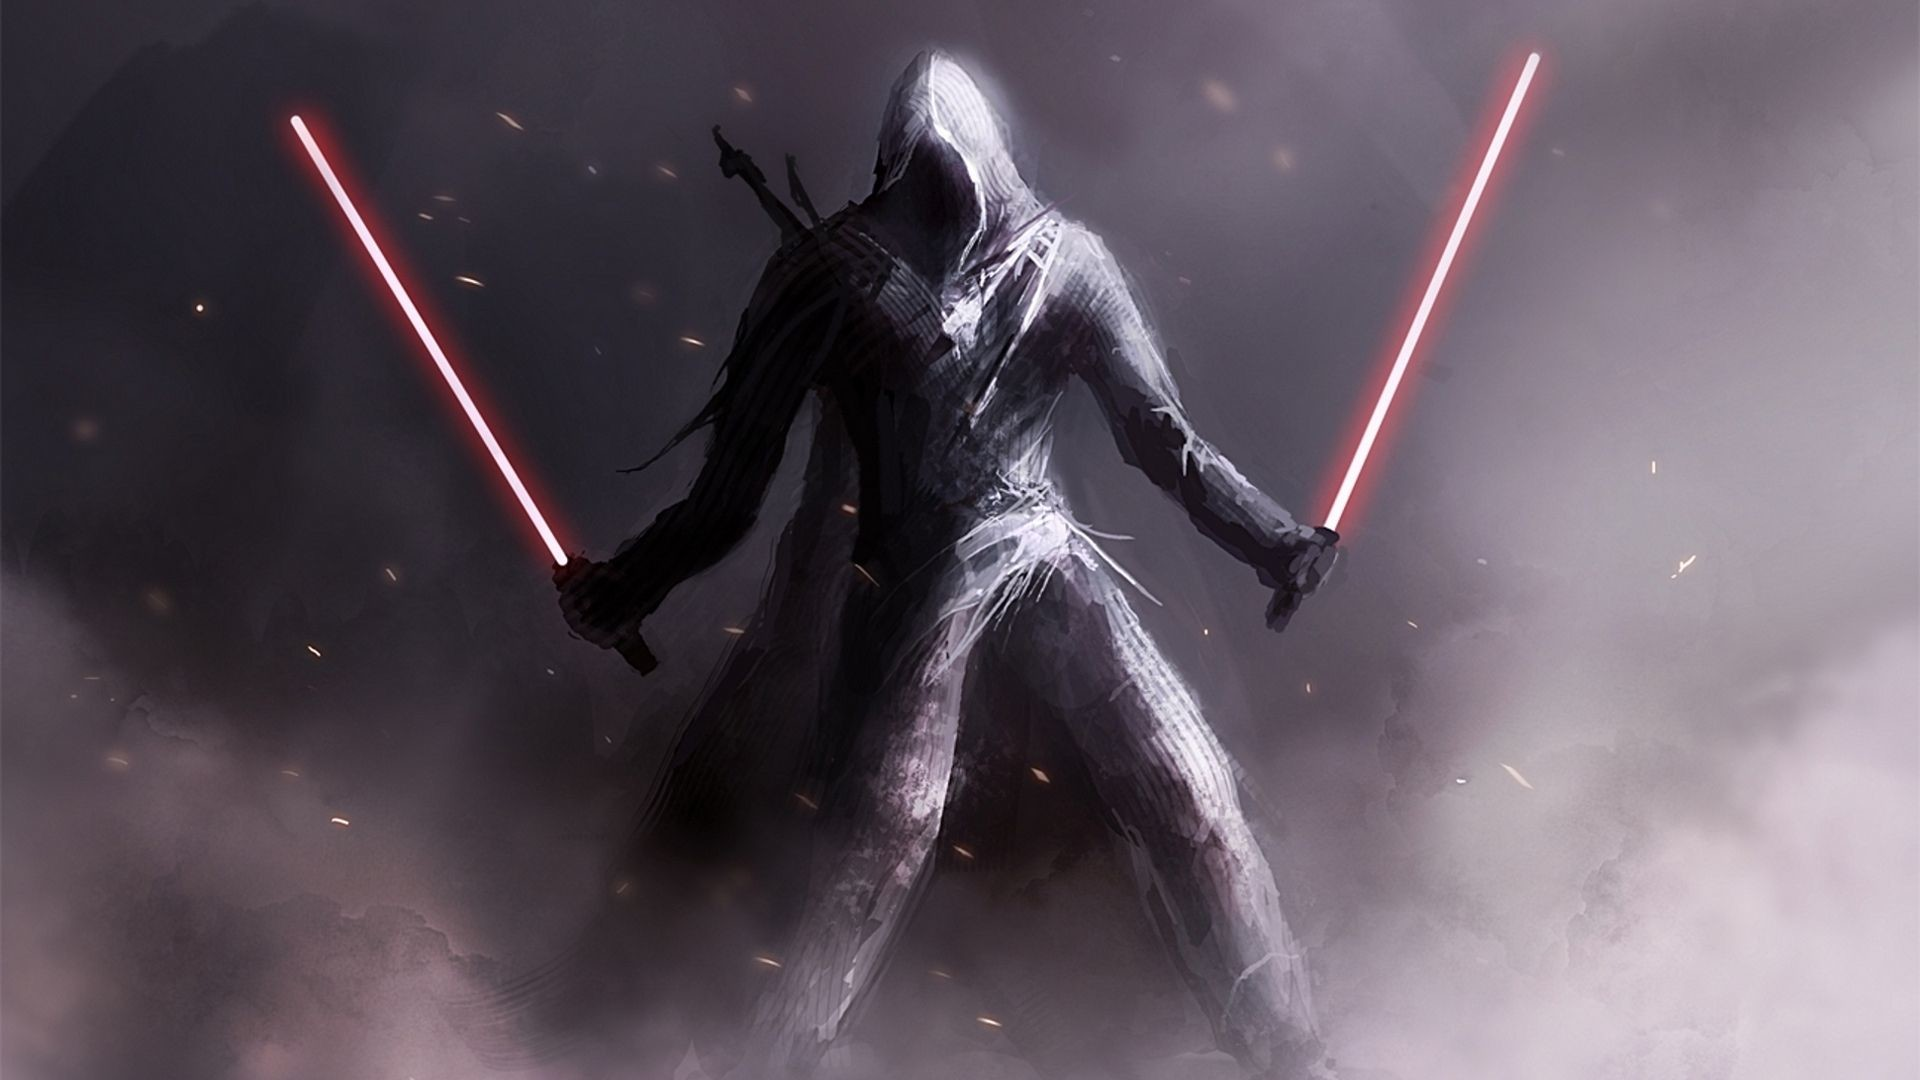 1920x1080 ... fiction wallpaper hd star wars sith wallpapers wide at; star wars revan  wallpaper wallpapersafari ...